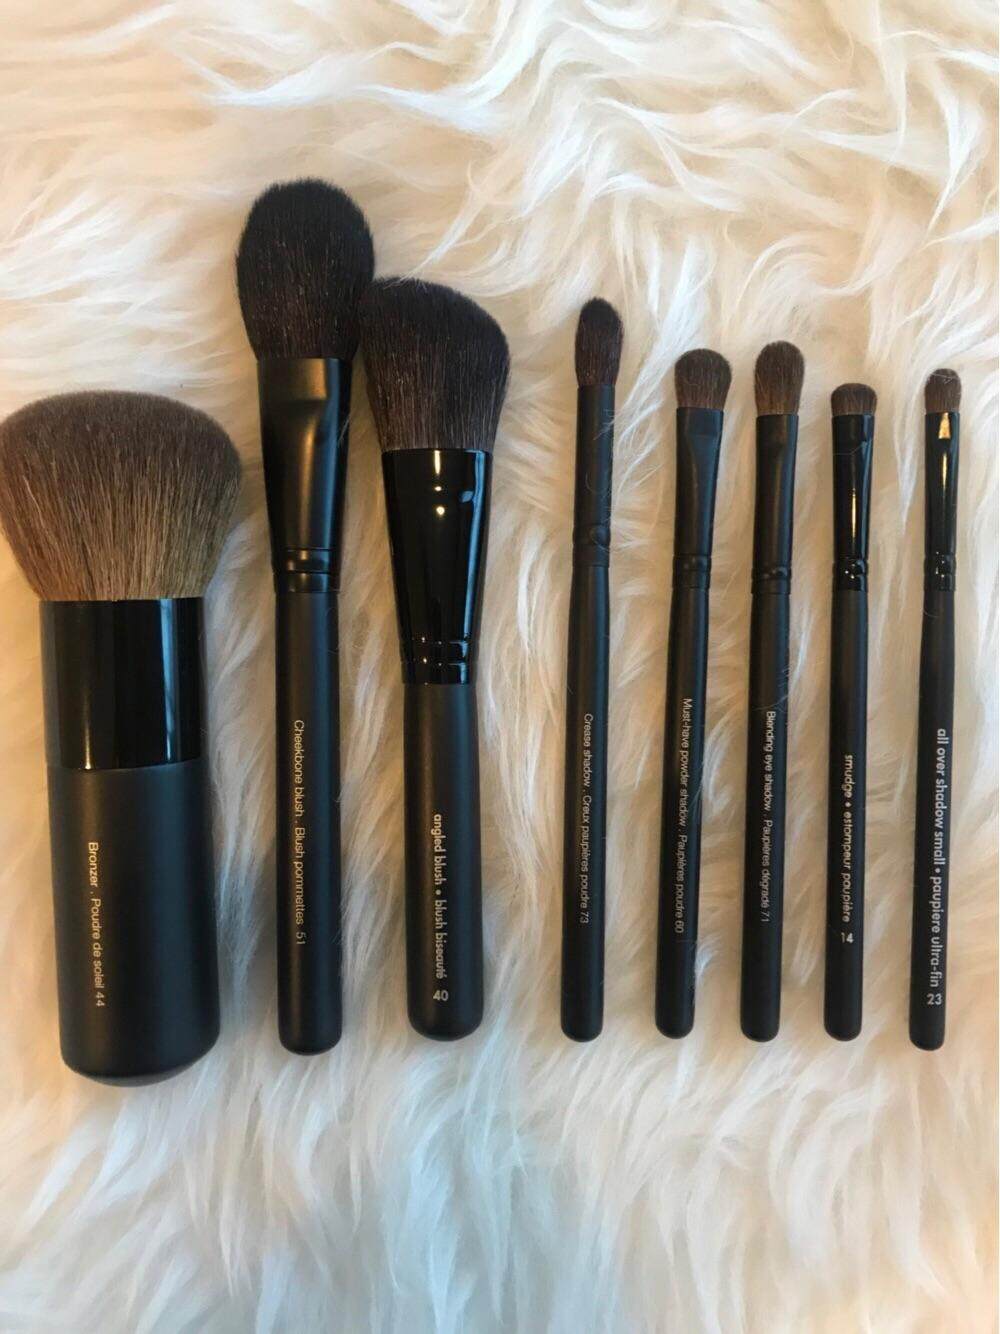 Pro Featherweight Powder Brush #91 by Sephora Collection #4